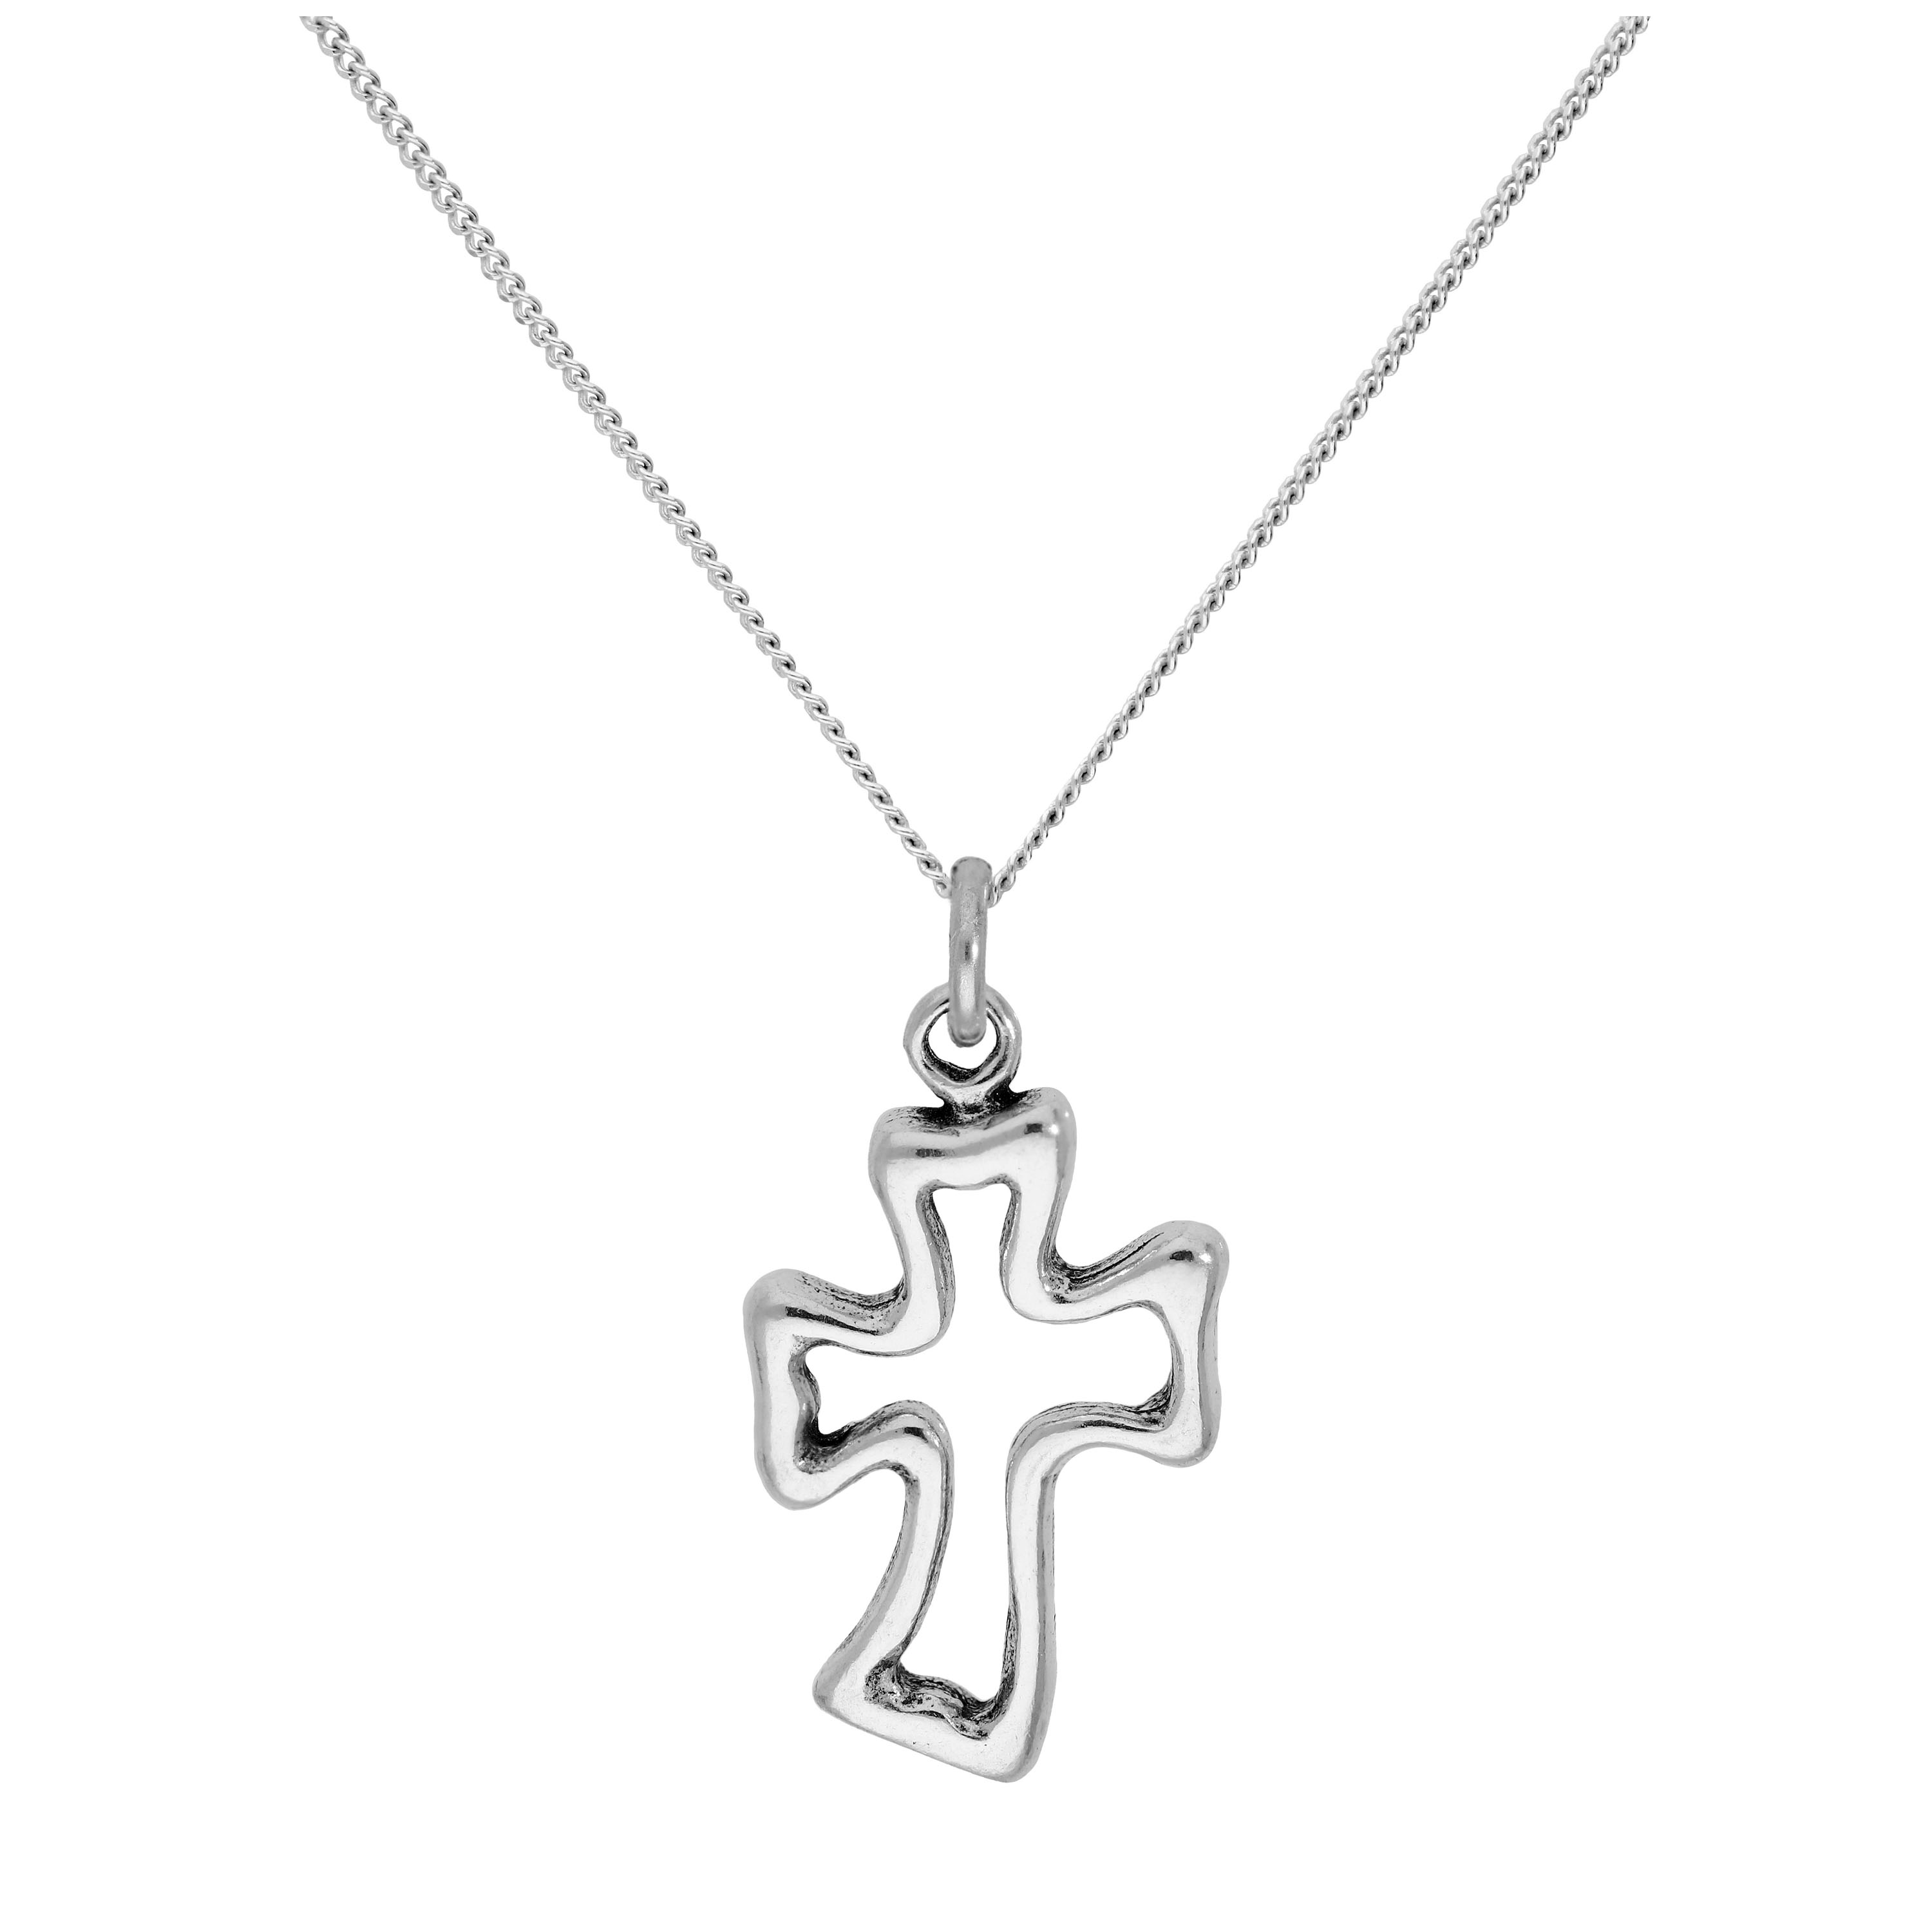 An image of Sterling Silver Twisty Cross Pendant on 16 2 Inches Diamond Cut Chain